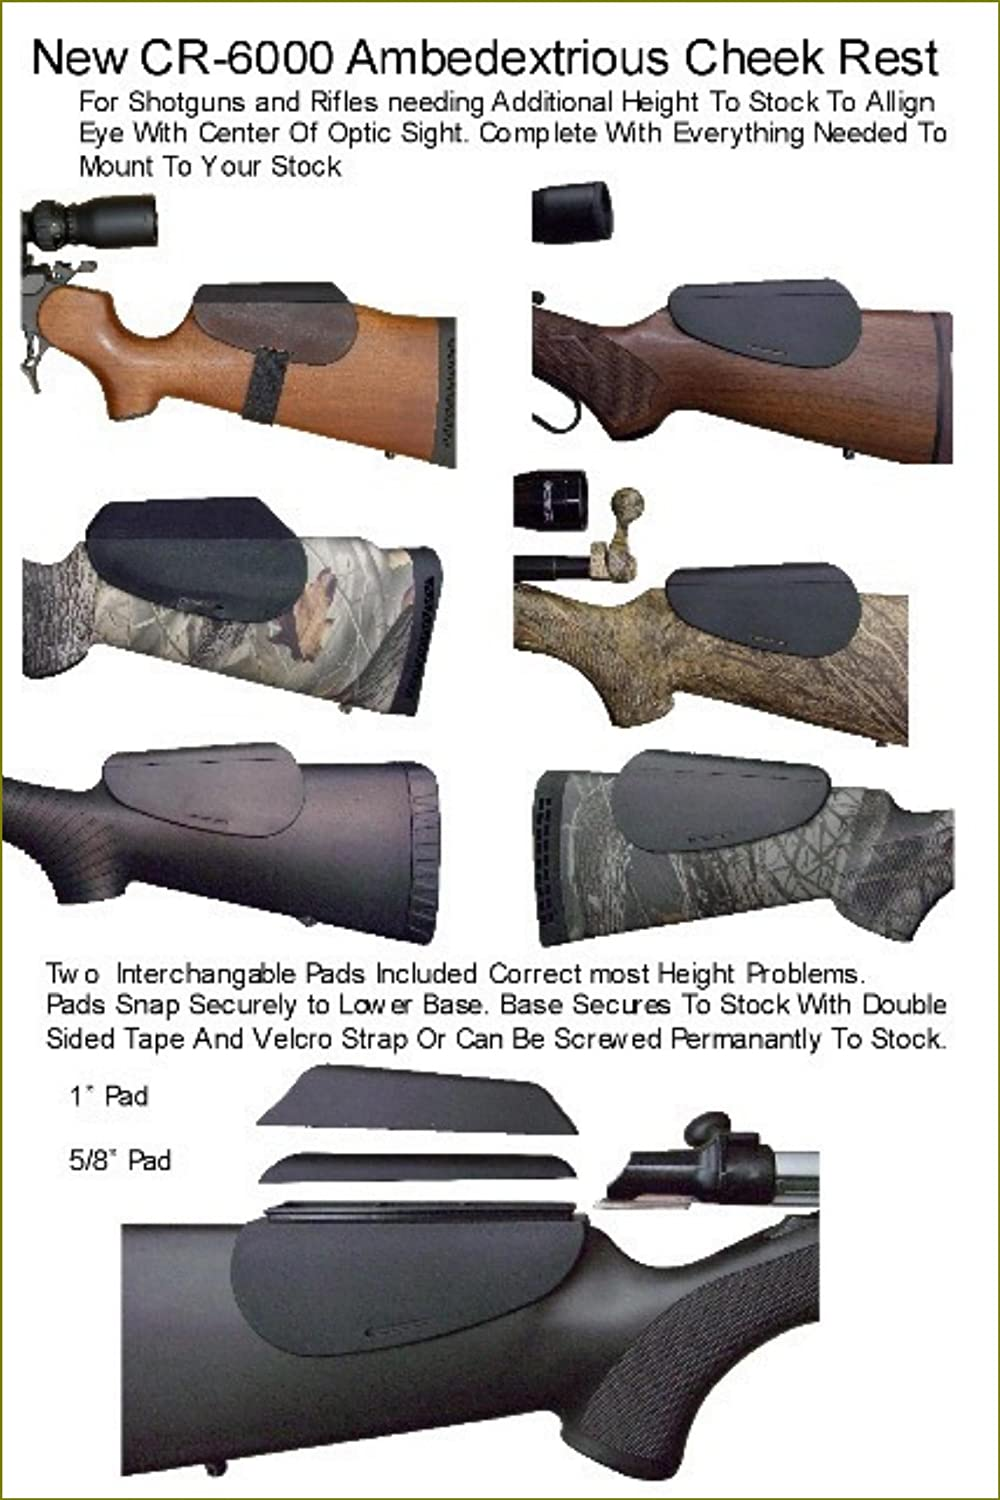 Warners Sporting Accu Riser Molded Black Cheek Rest Remington 870 Wingmaster Parts List Wallpapers Gun Stock Accessories Sports Outdoors